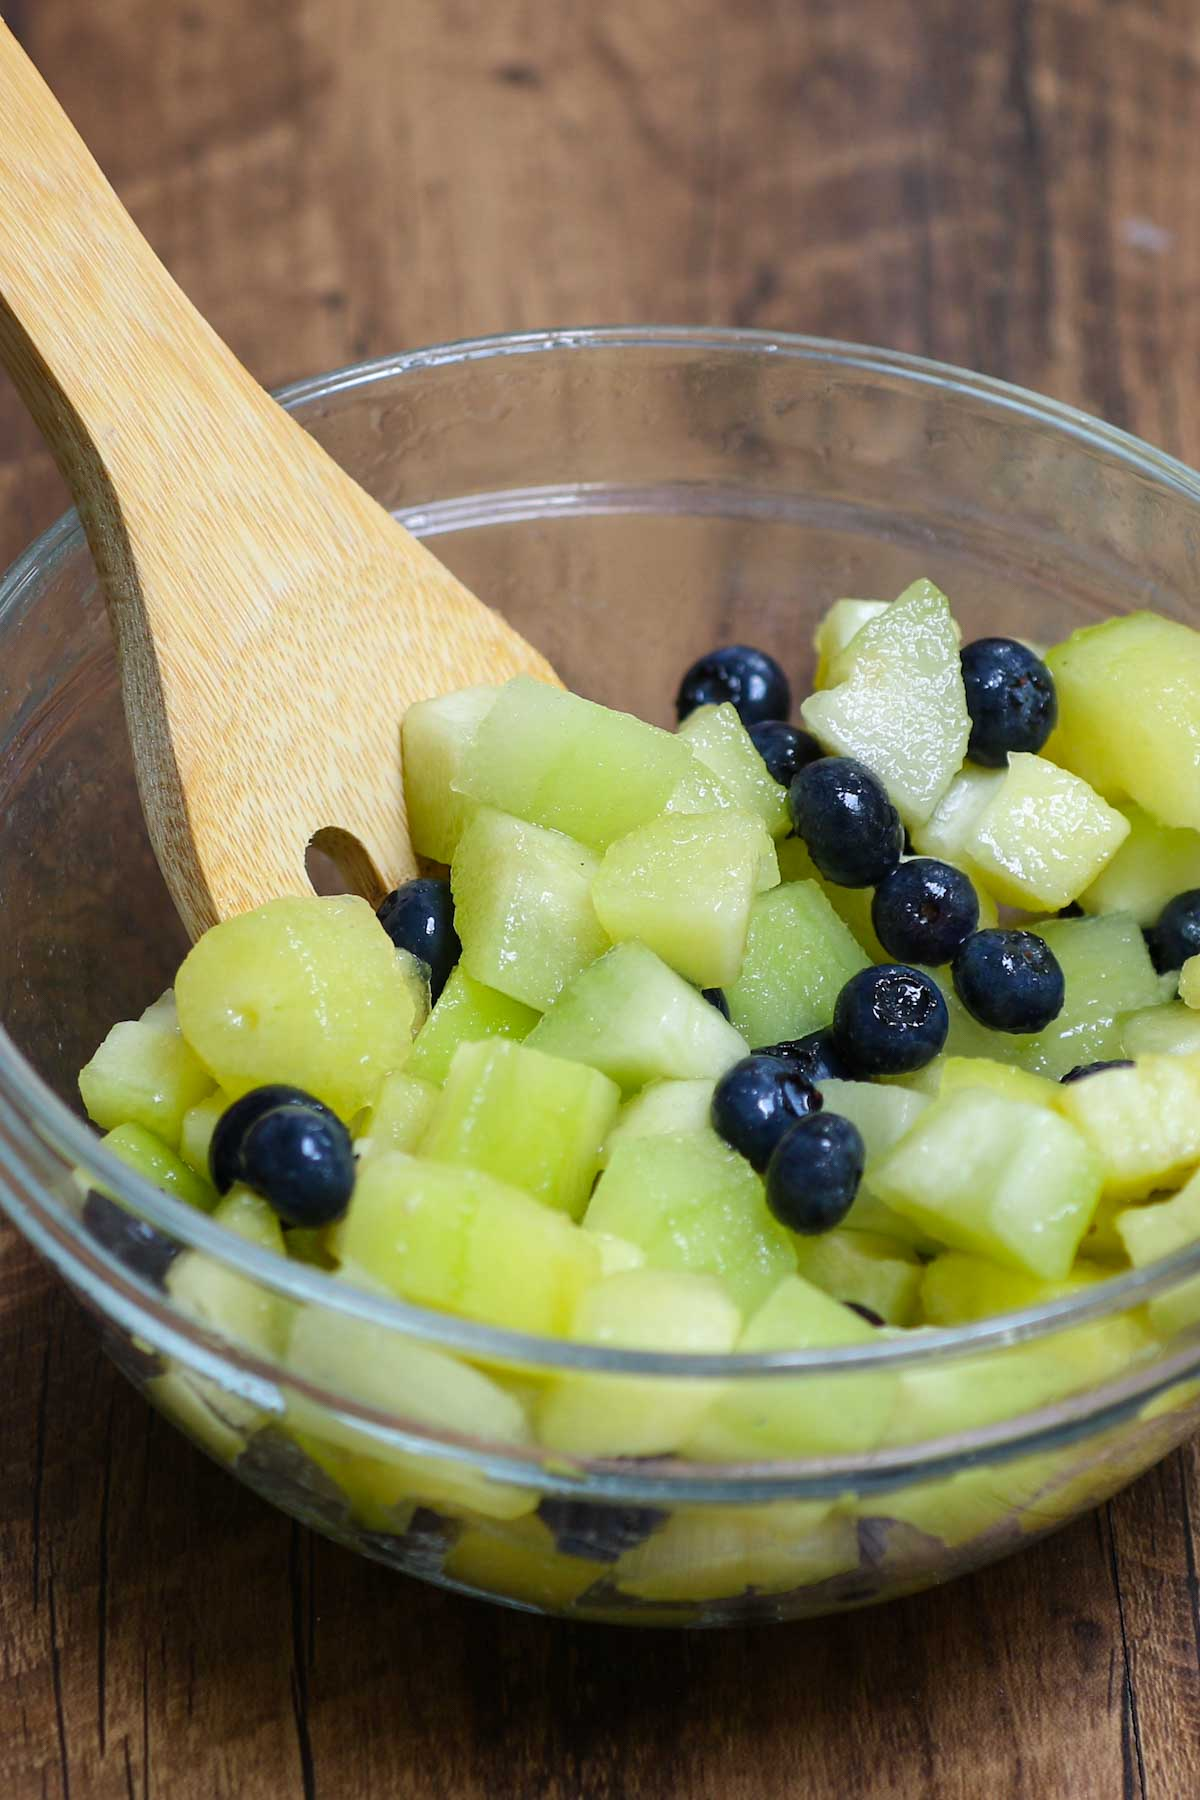 Mixing pepino melon with blueberries and lime juice for a refreshing fruit salad